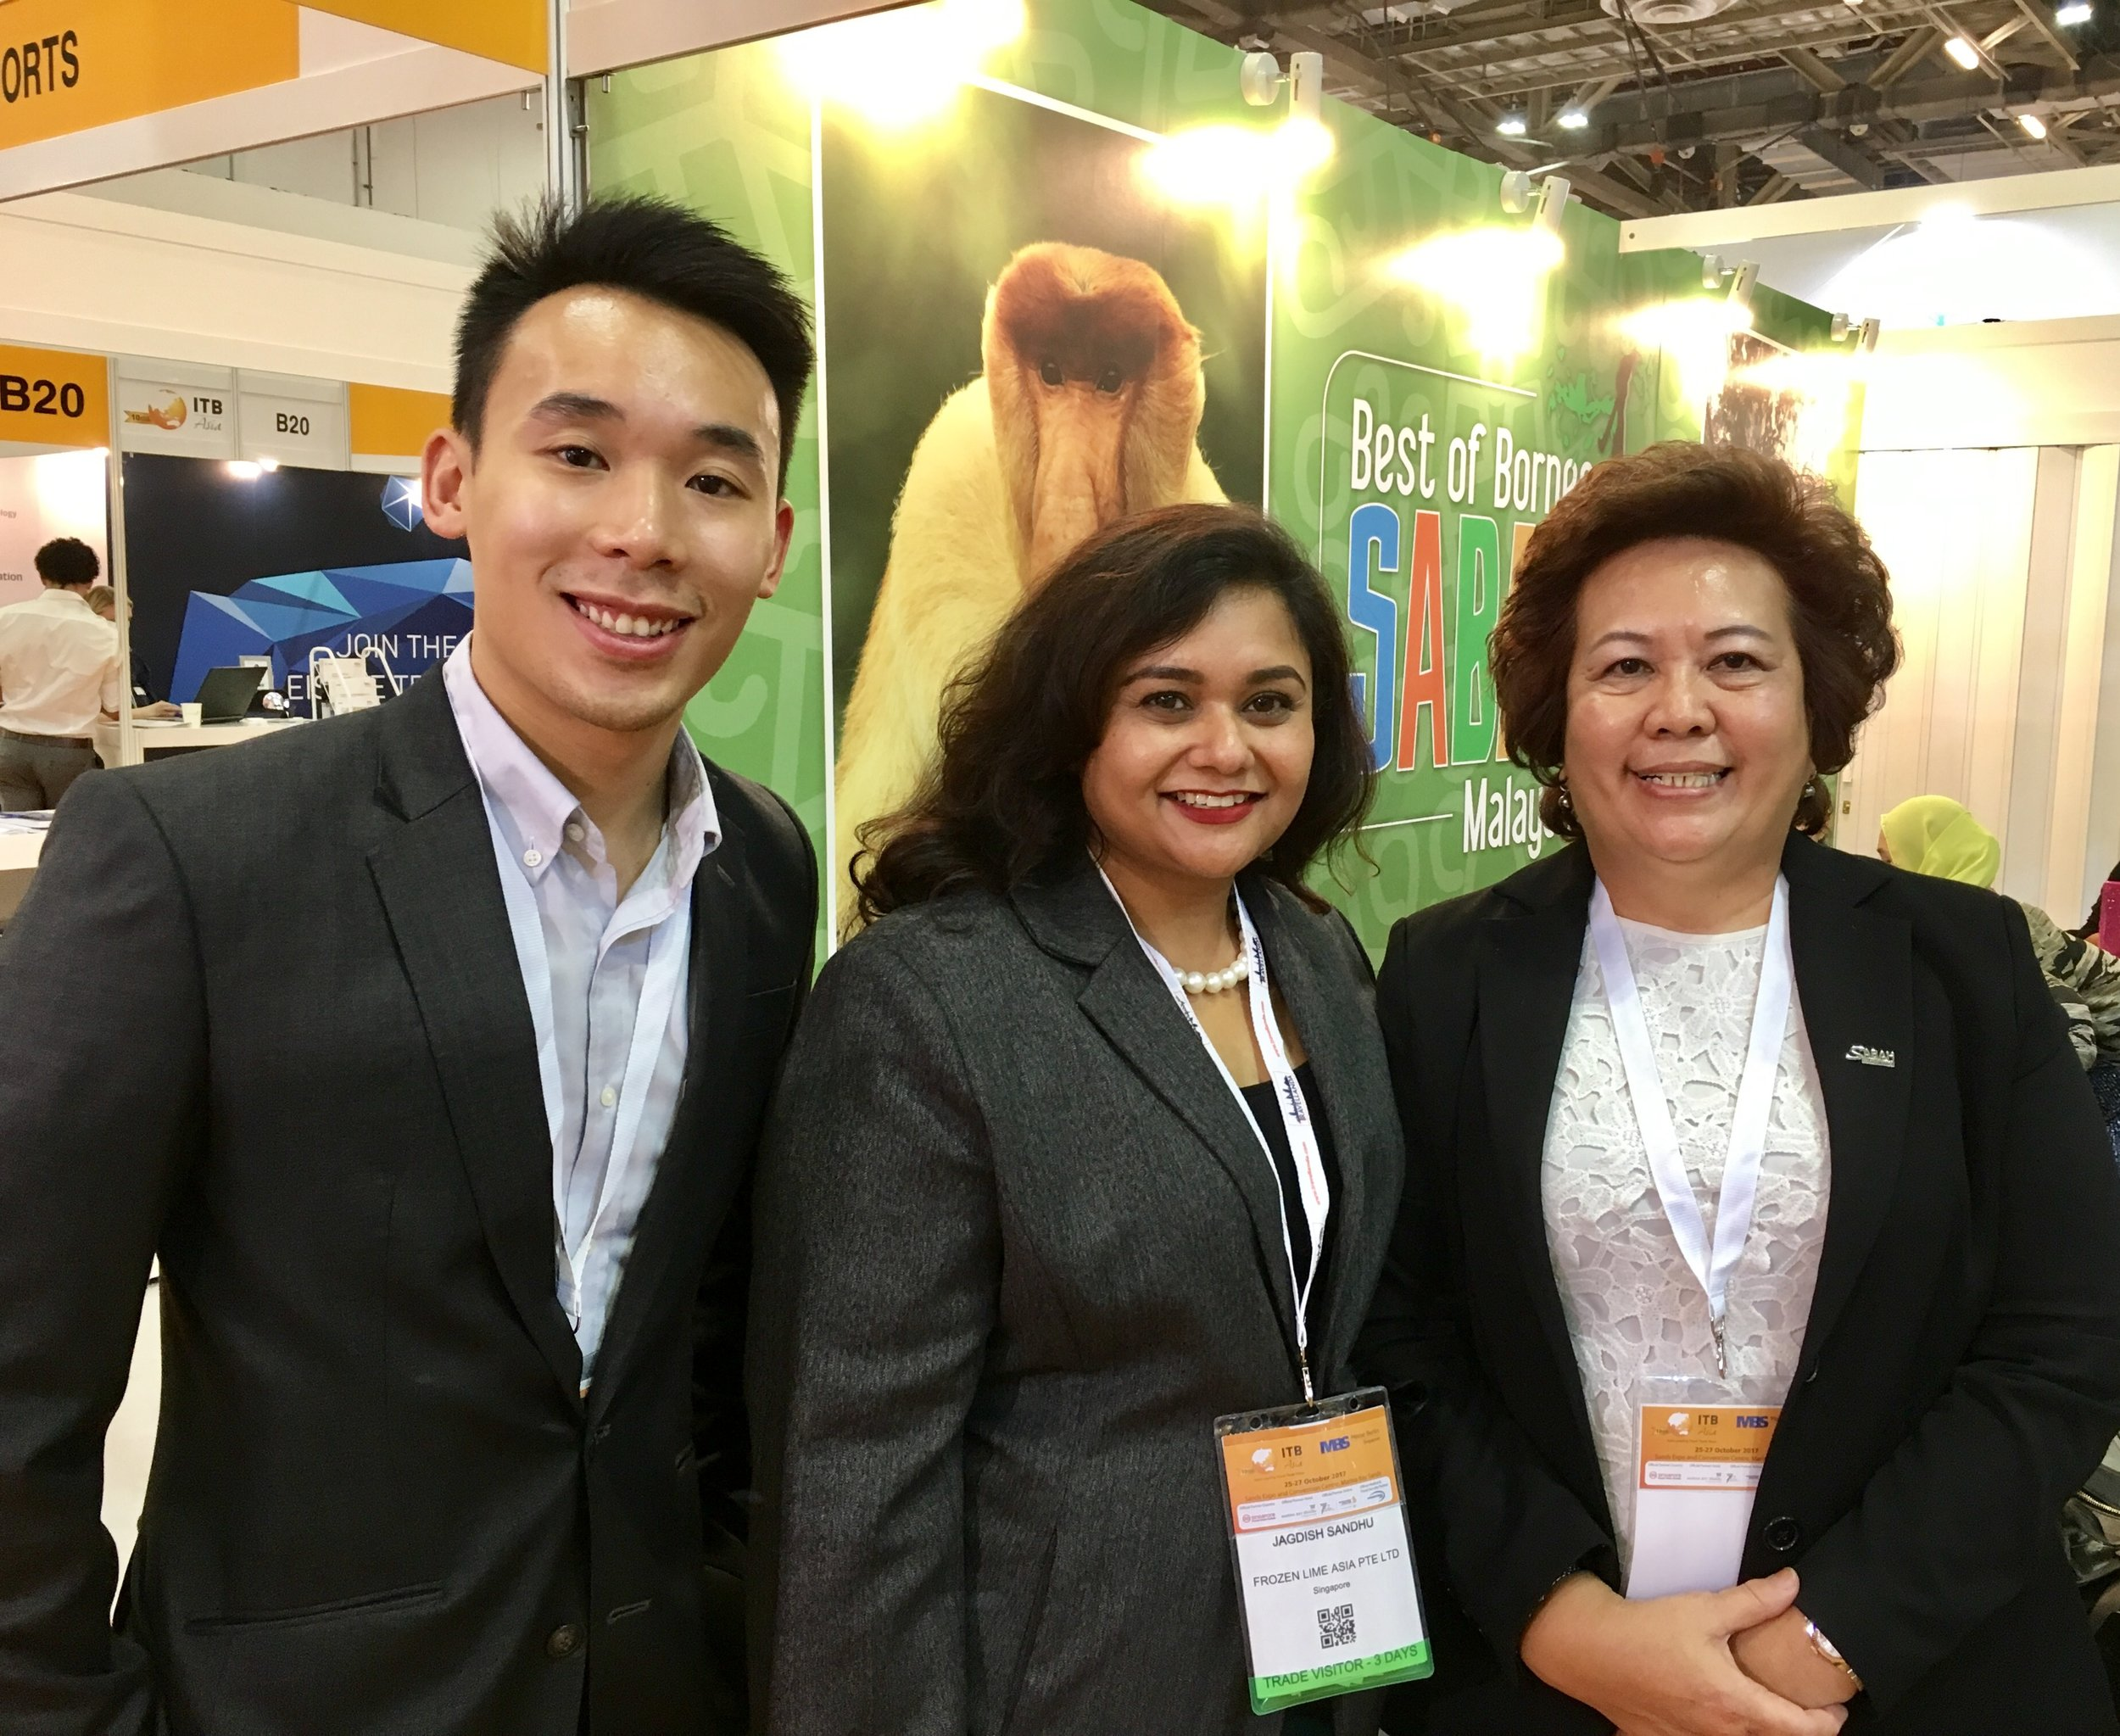 From left to right: Mr Pow Zhi Hoe (Asst Sales Manager, FLA), Ms Jagdish Sandhu (CEO, FLA), Ms Elaine Kwan (Group Director of Sales and Marketing, Sutera Harbour Resort, Kota Kinabalu).